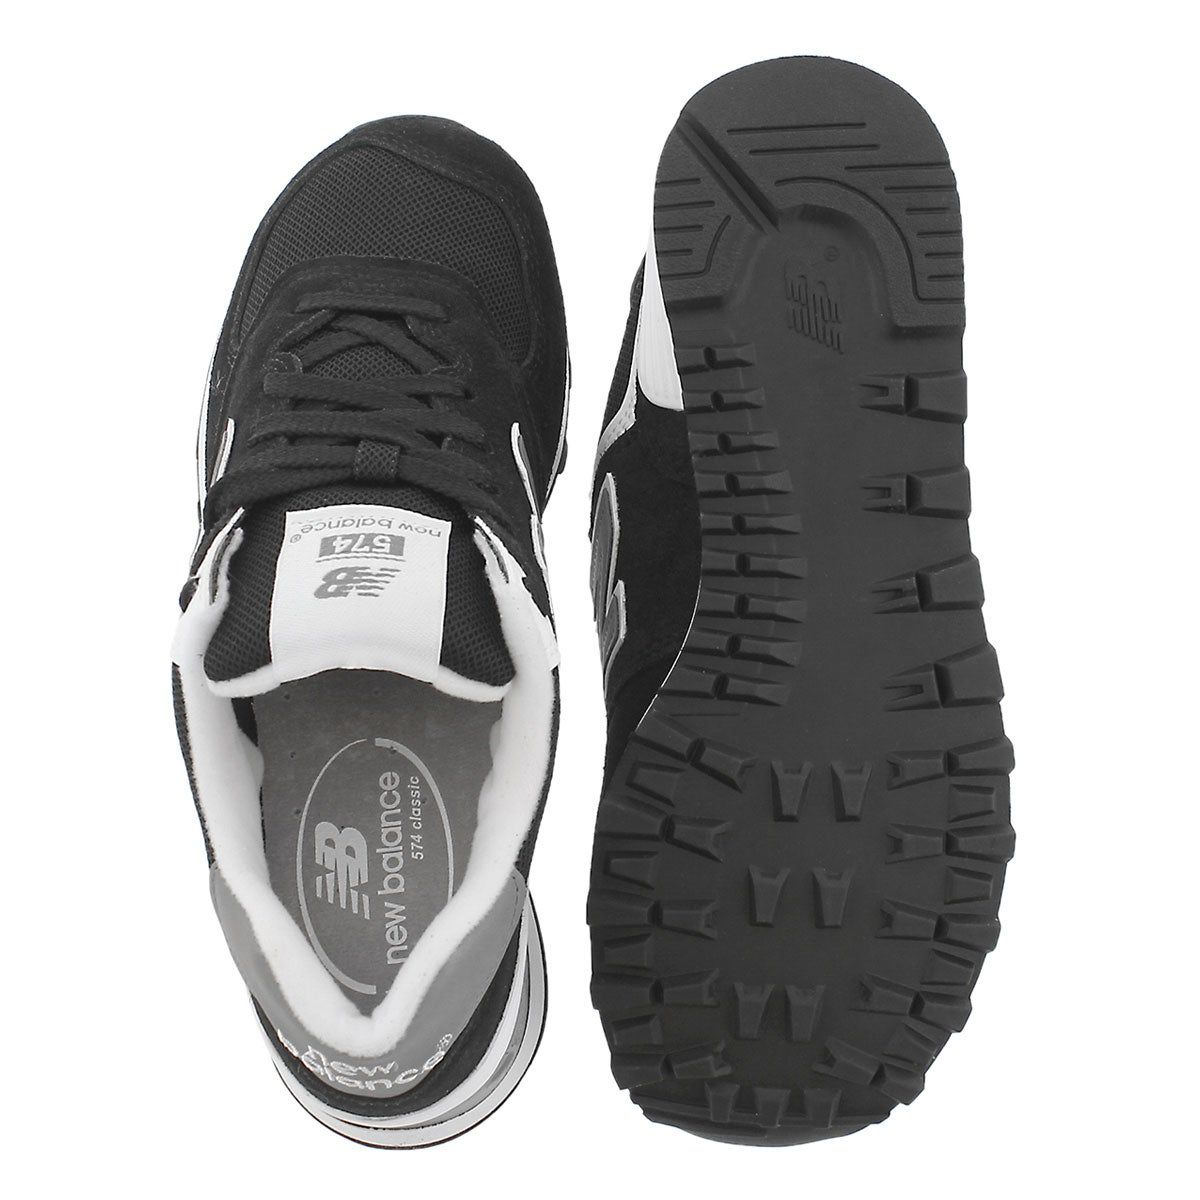 Lds 574 black/white lace up sneaker